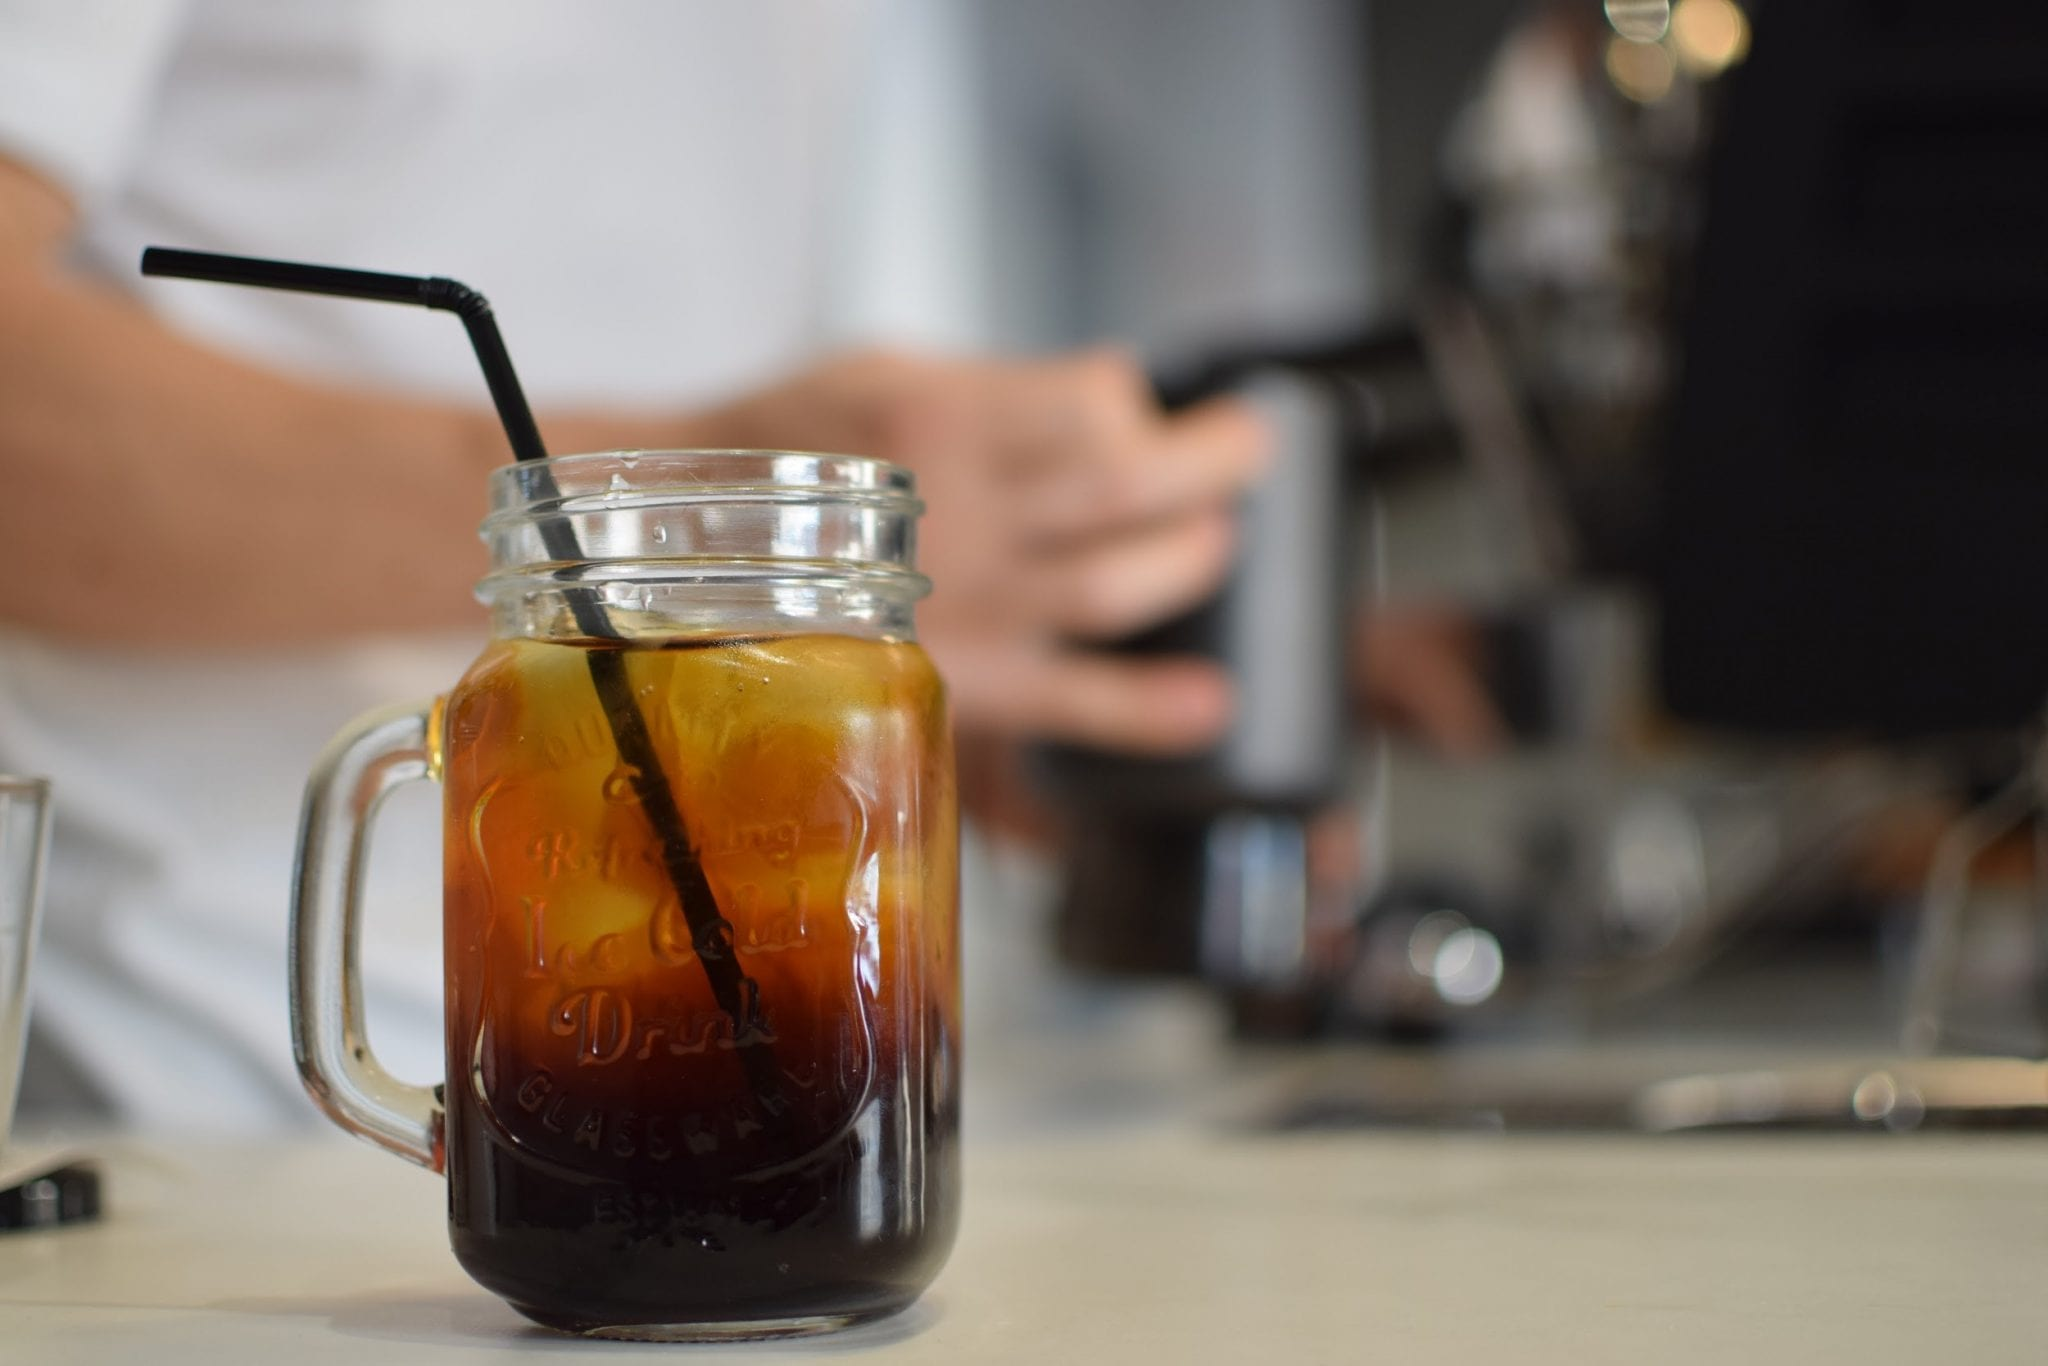 A glass of cold brew coffee with straw.